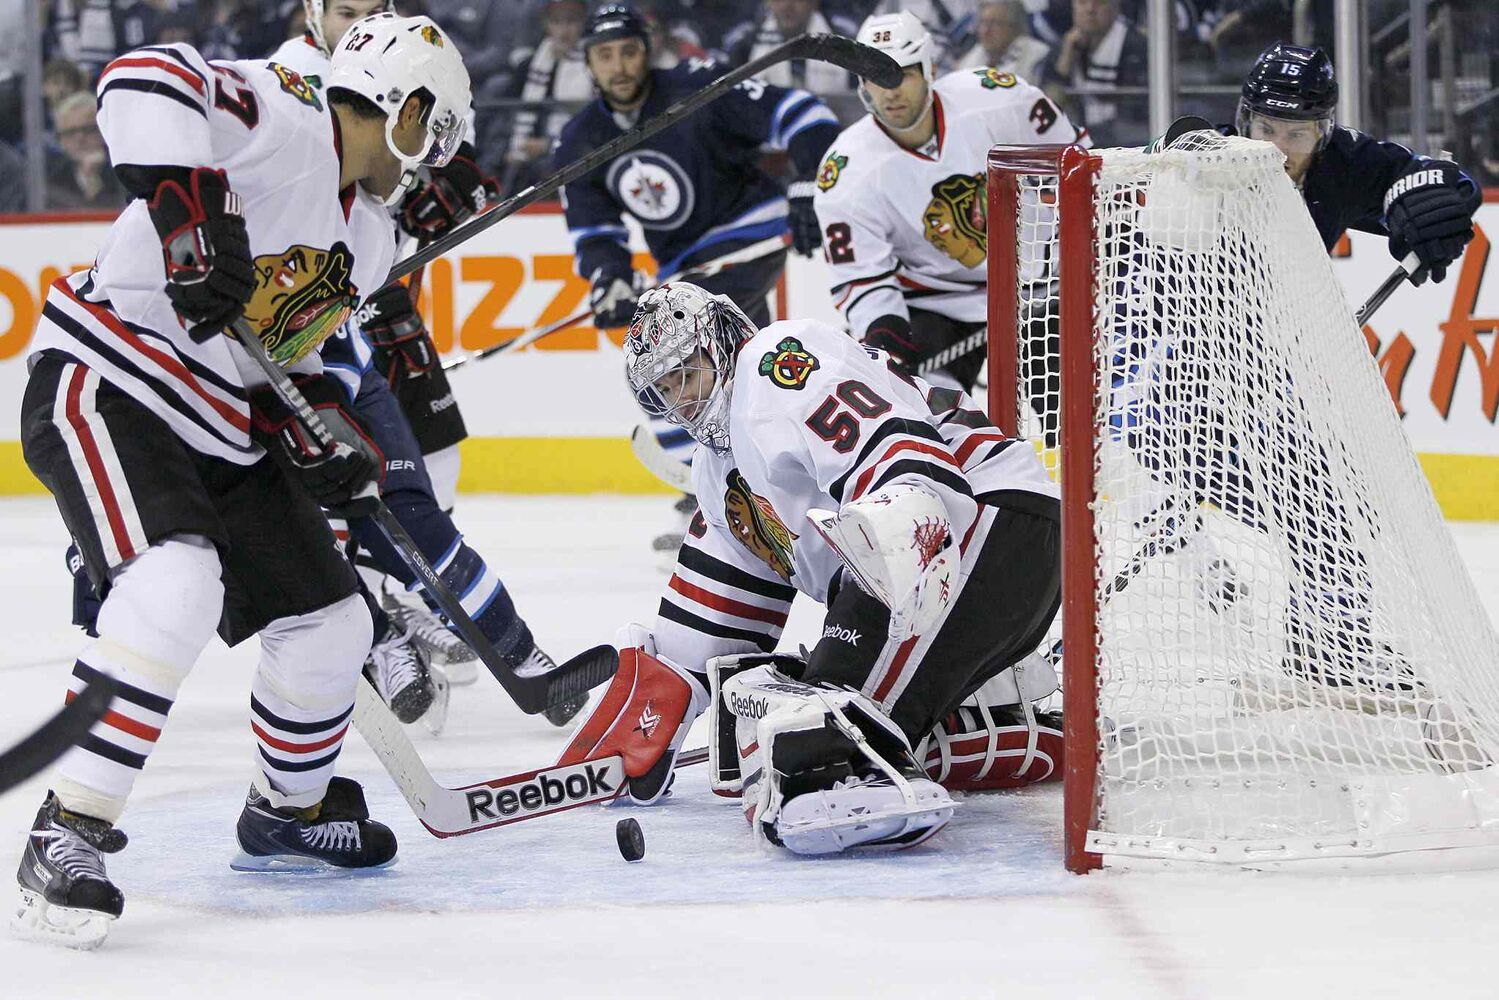 Chicago Blackhawks goaltender Corey Crawford (50) makes a save off a Matt Halishchuk shot as Johnny Oduya (left) picks up the rebound during the second period.